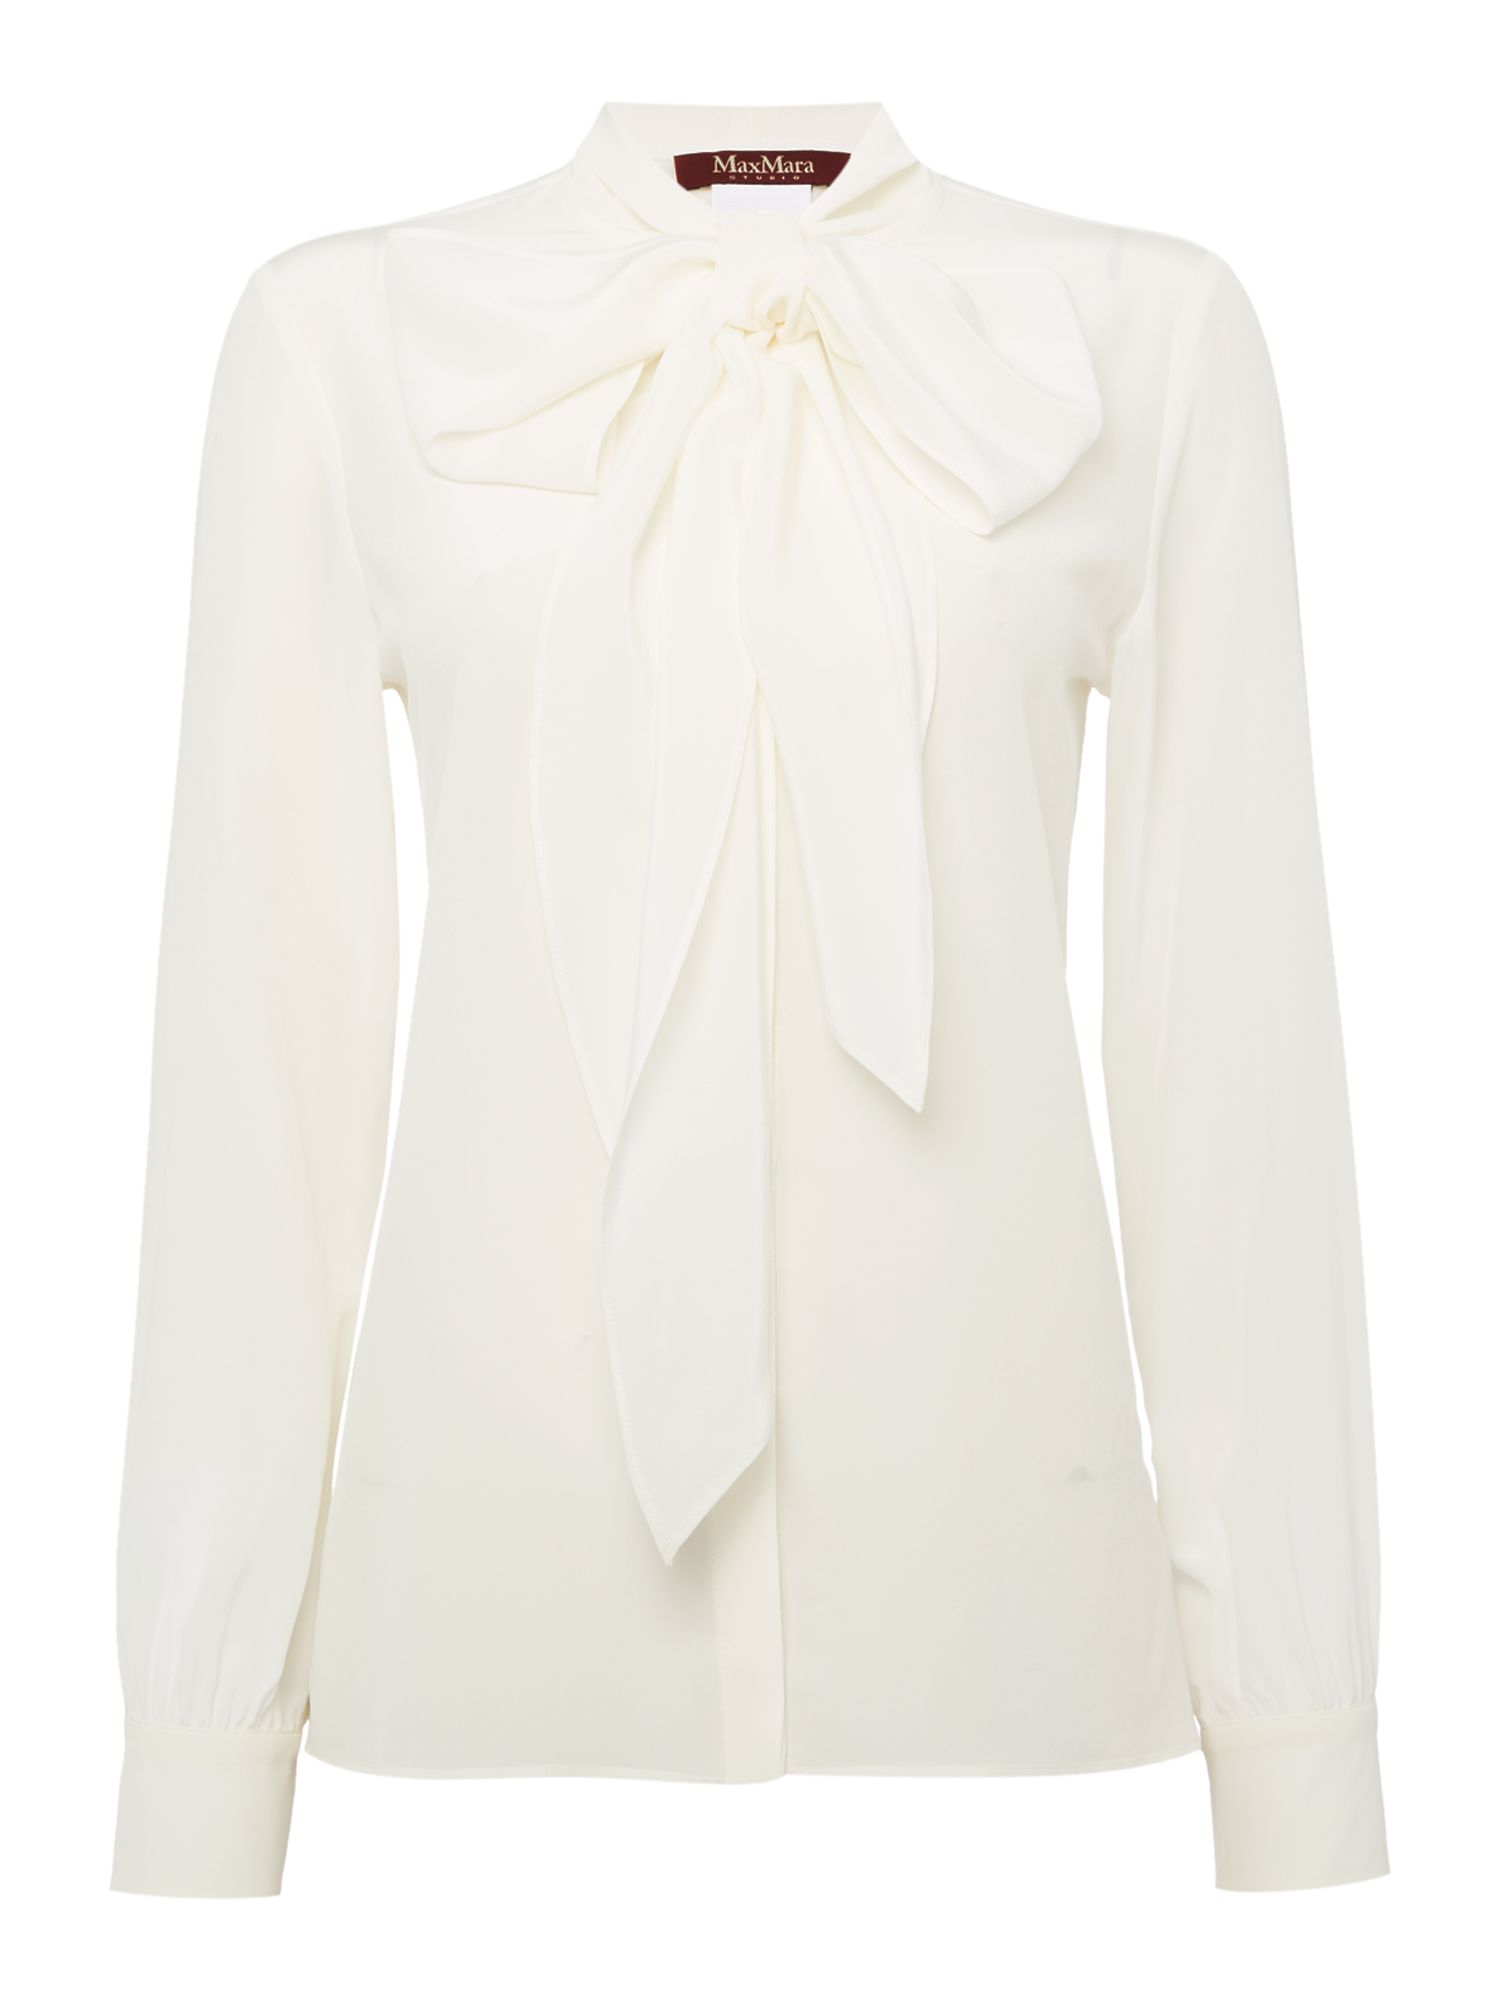 1920sStyleBlouses Max Mara Maldive long sleeve silk pussy bow blouse Cream £200.00 AT vintagedancer.com